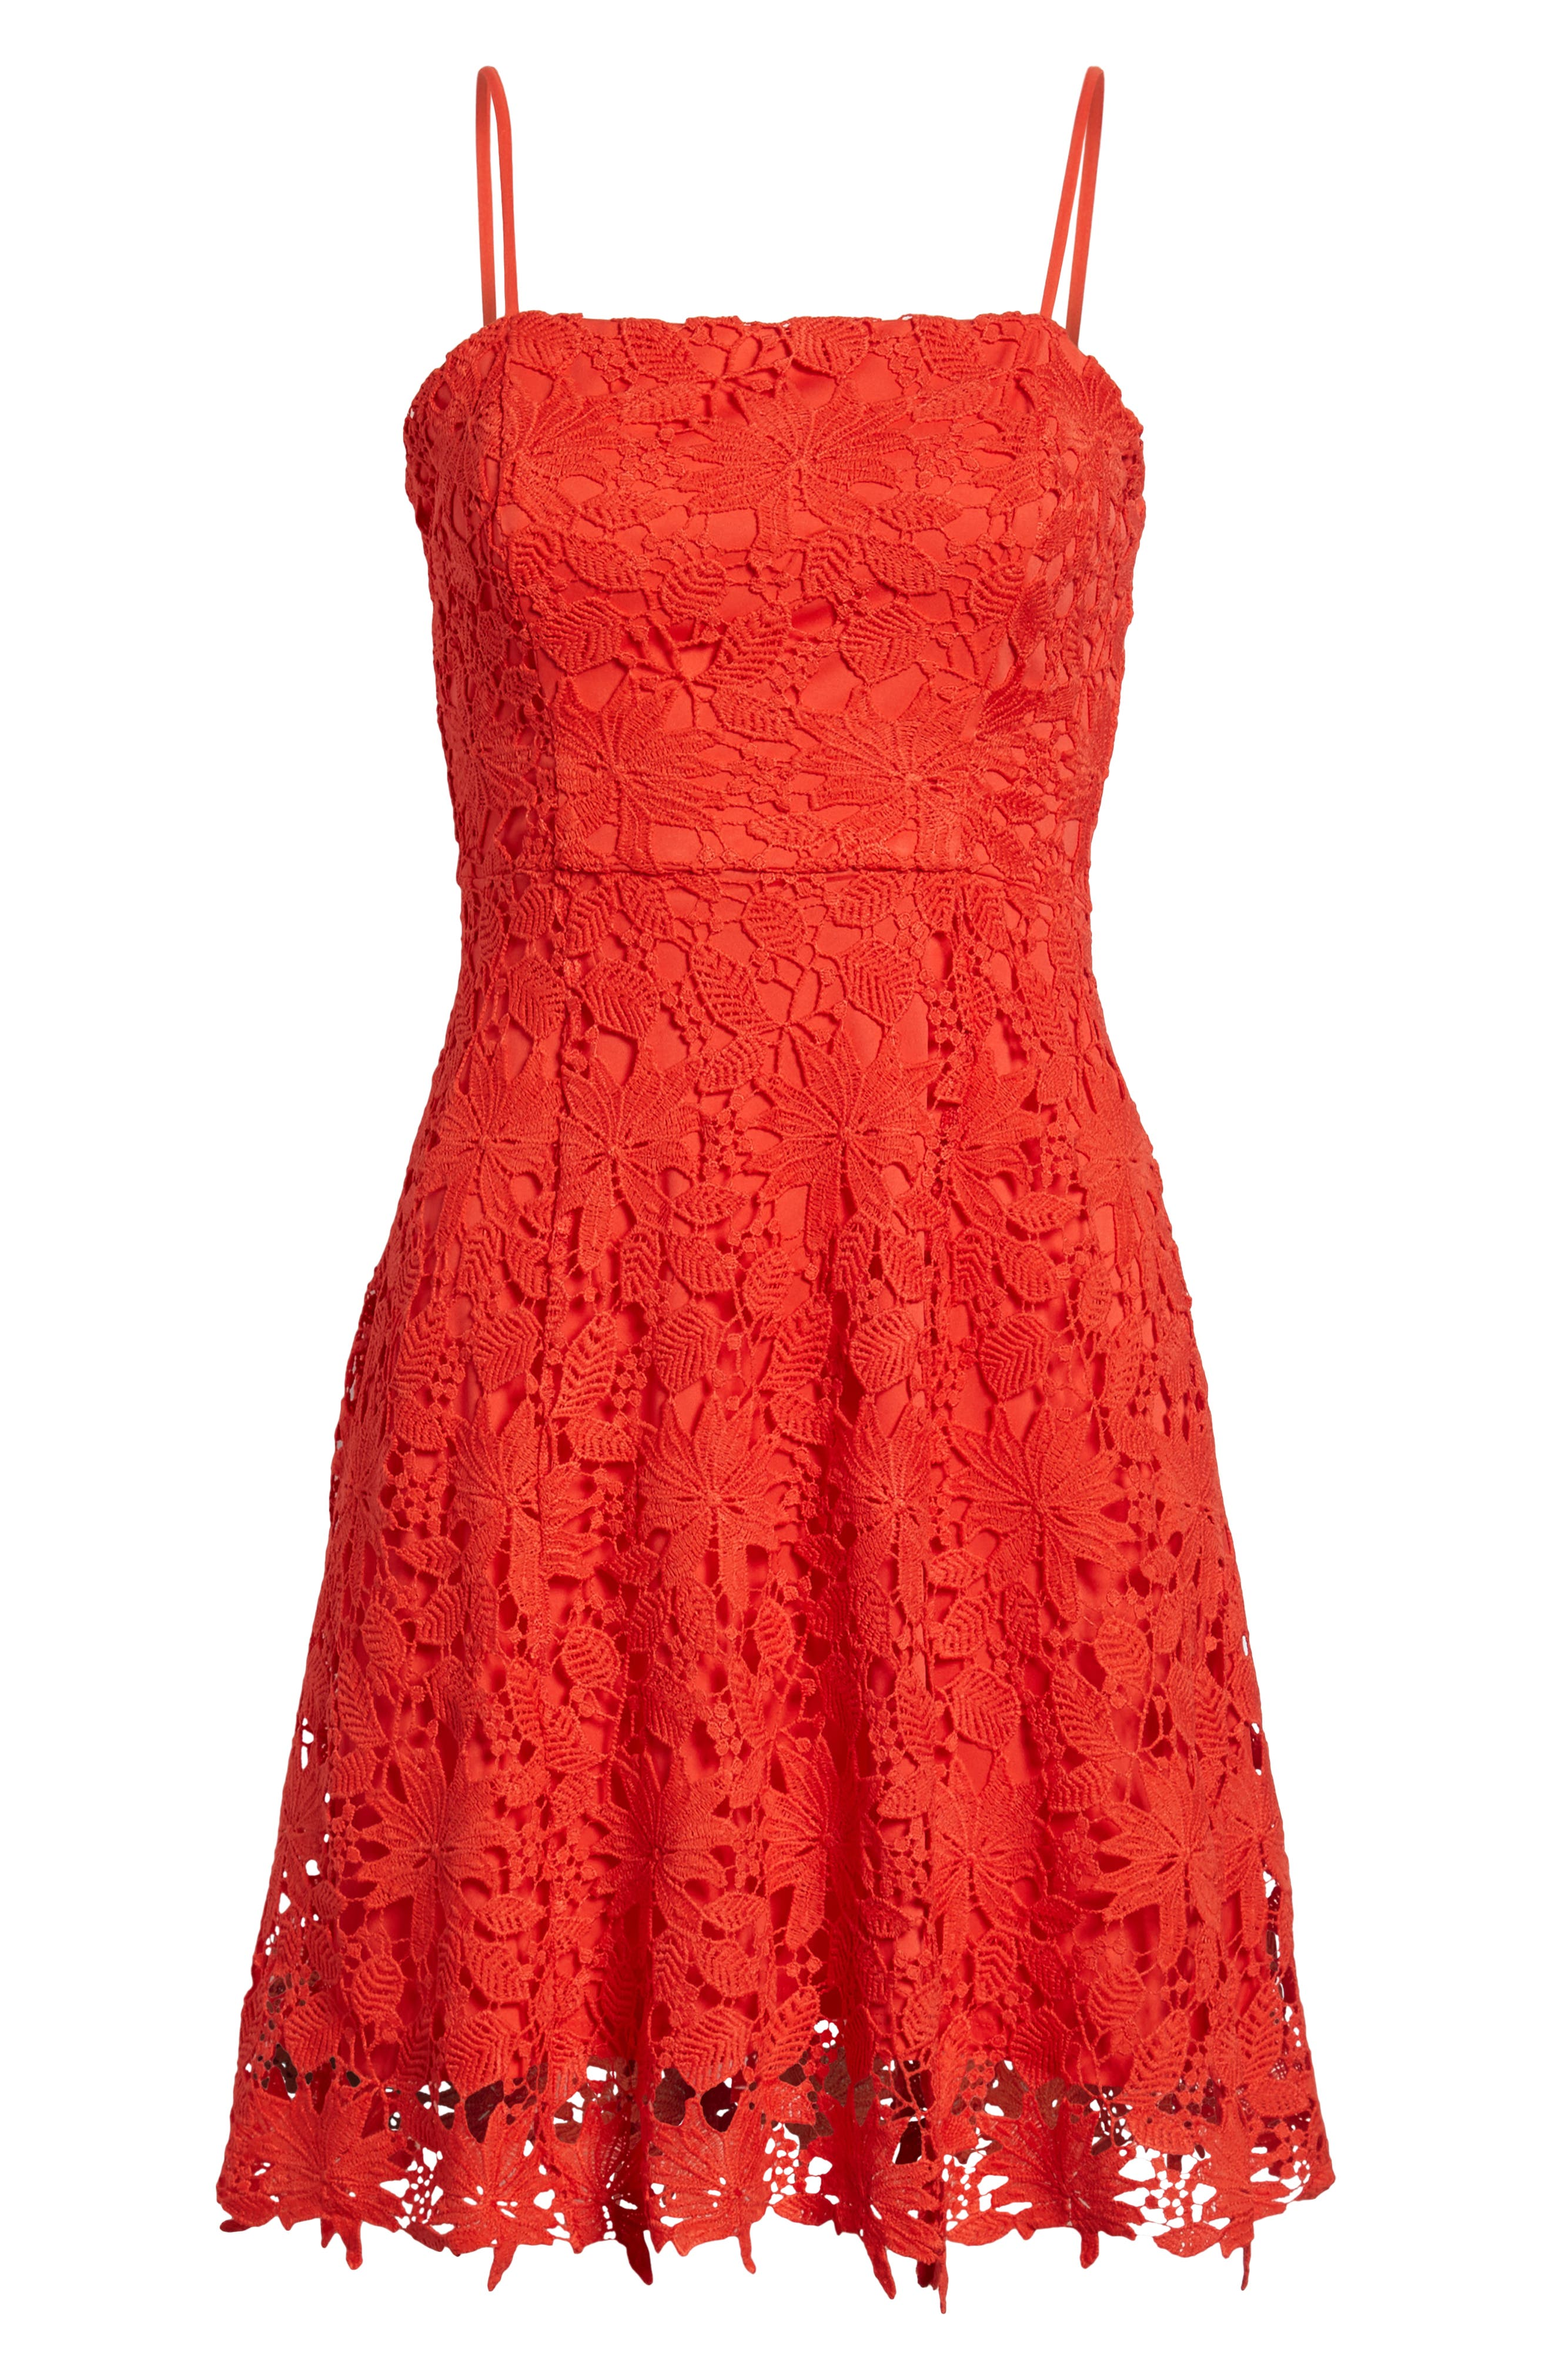 Lace Fit & Flare Dress,                             Alternate thumbnail 7, color,                             Candy Red